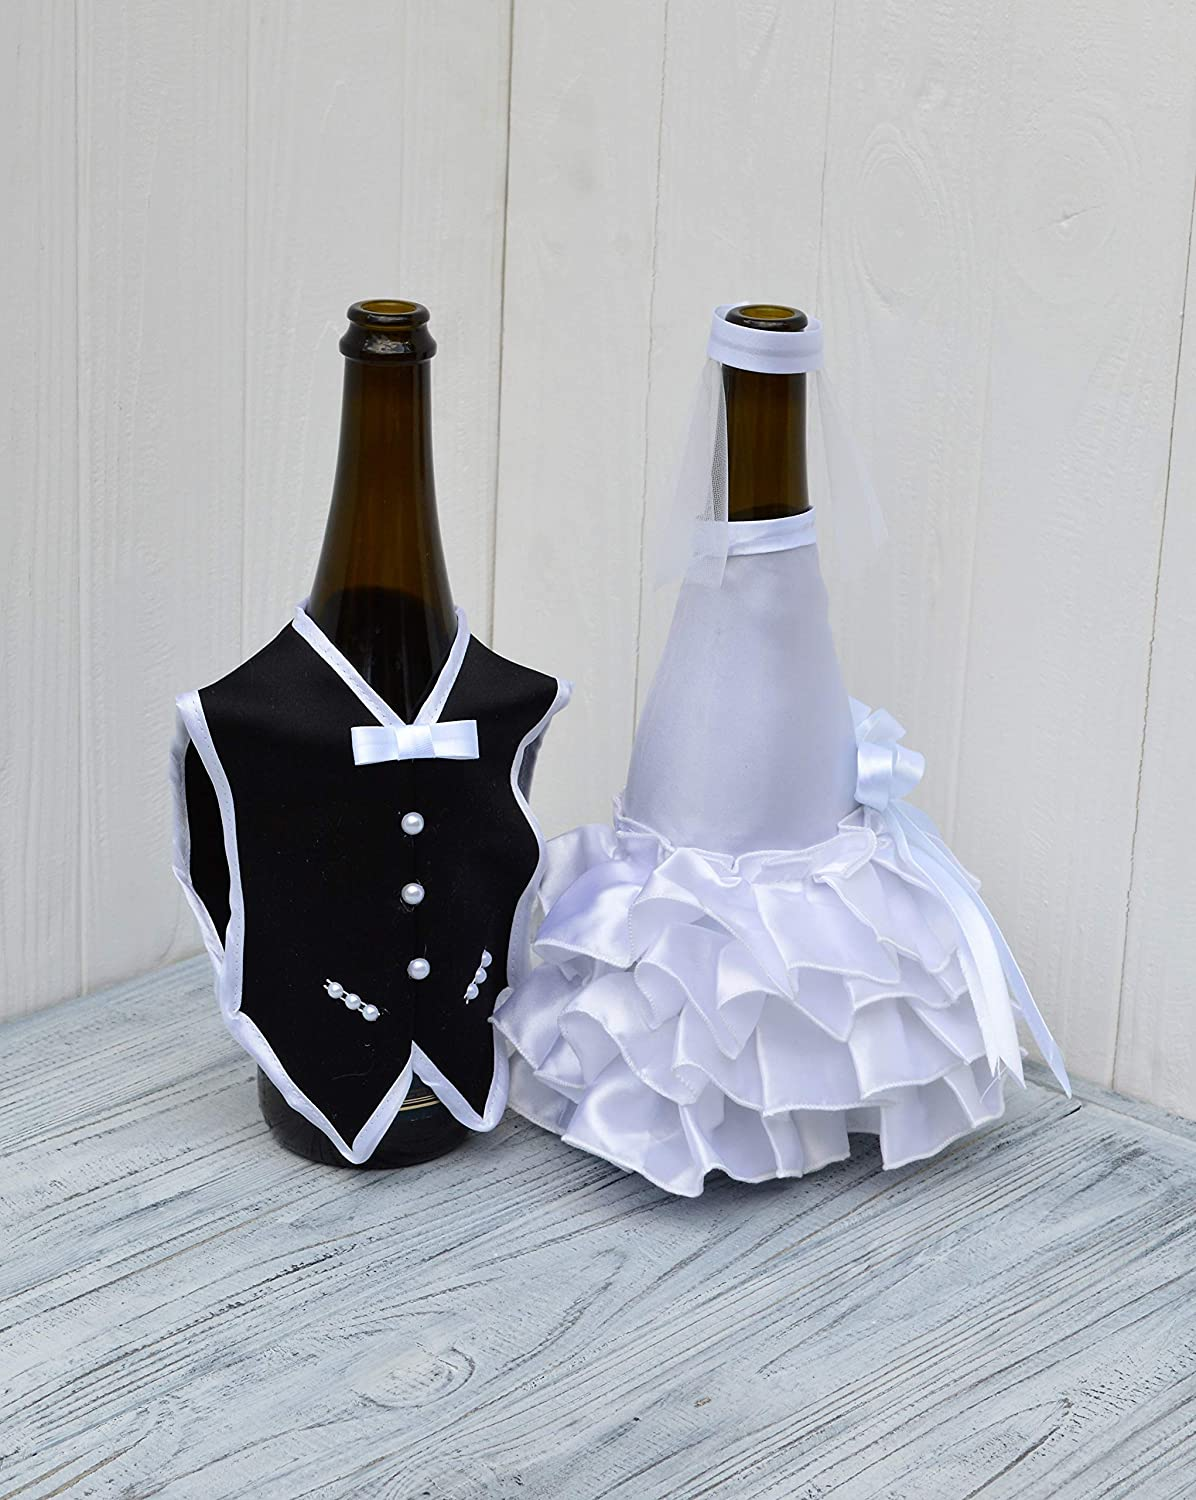 Buy Bride and Groom Wine Bottle Covers- Wine Bottle Dress-up for Weddings-  Wedding Gifts for The Couple- Fun Wine Bottle Covers- Wedding Centerpieces  Decorations- Wine décor- Wine Accessories (White) Online at Low